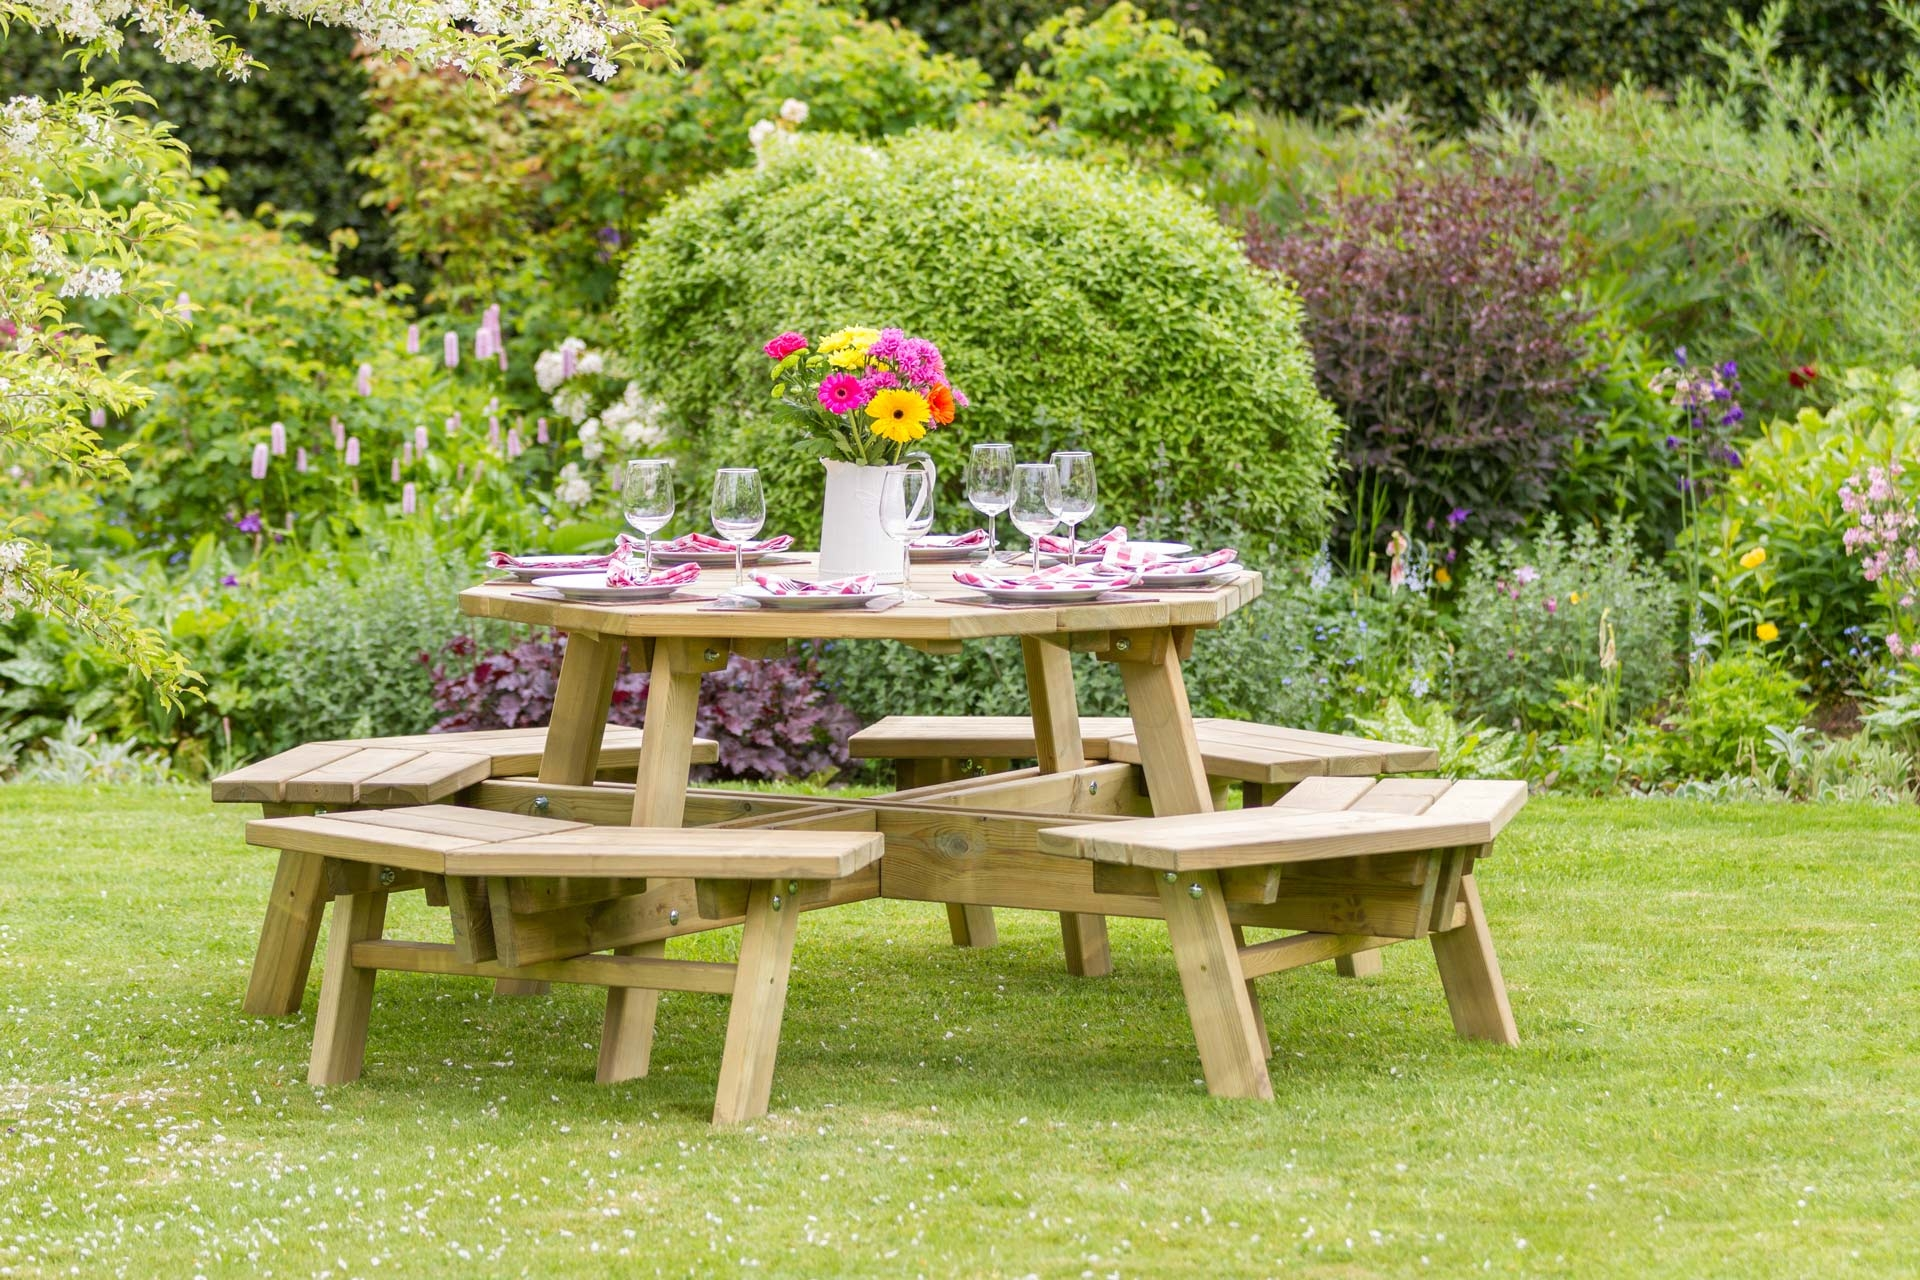 Alex_Octagon_Picnic_Table_-_SEATALEX